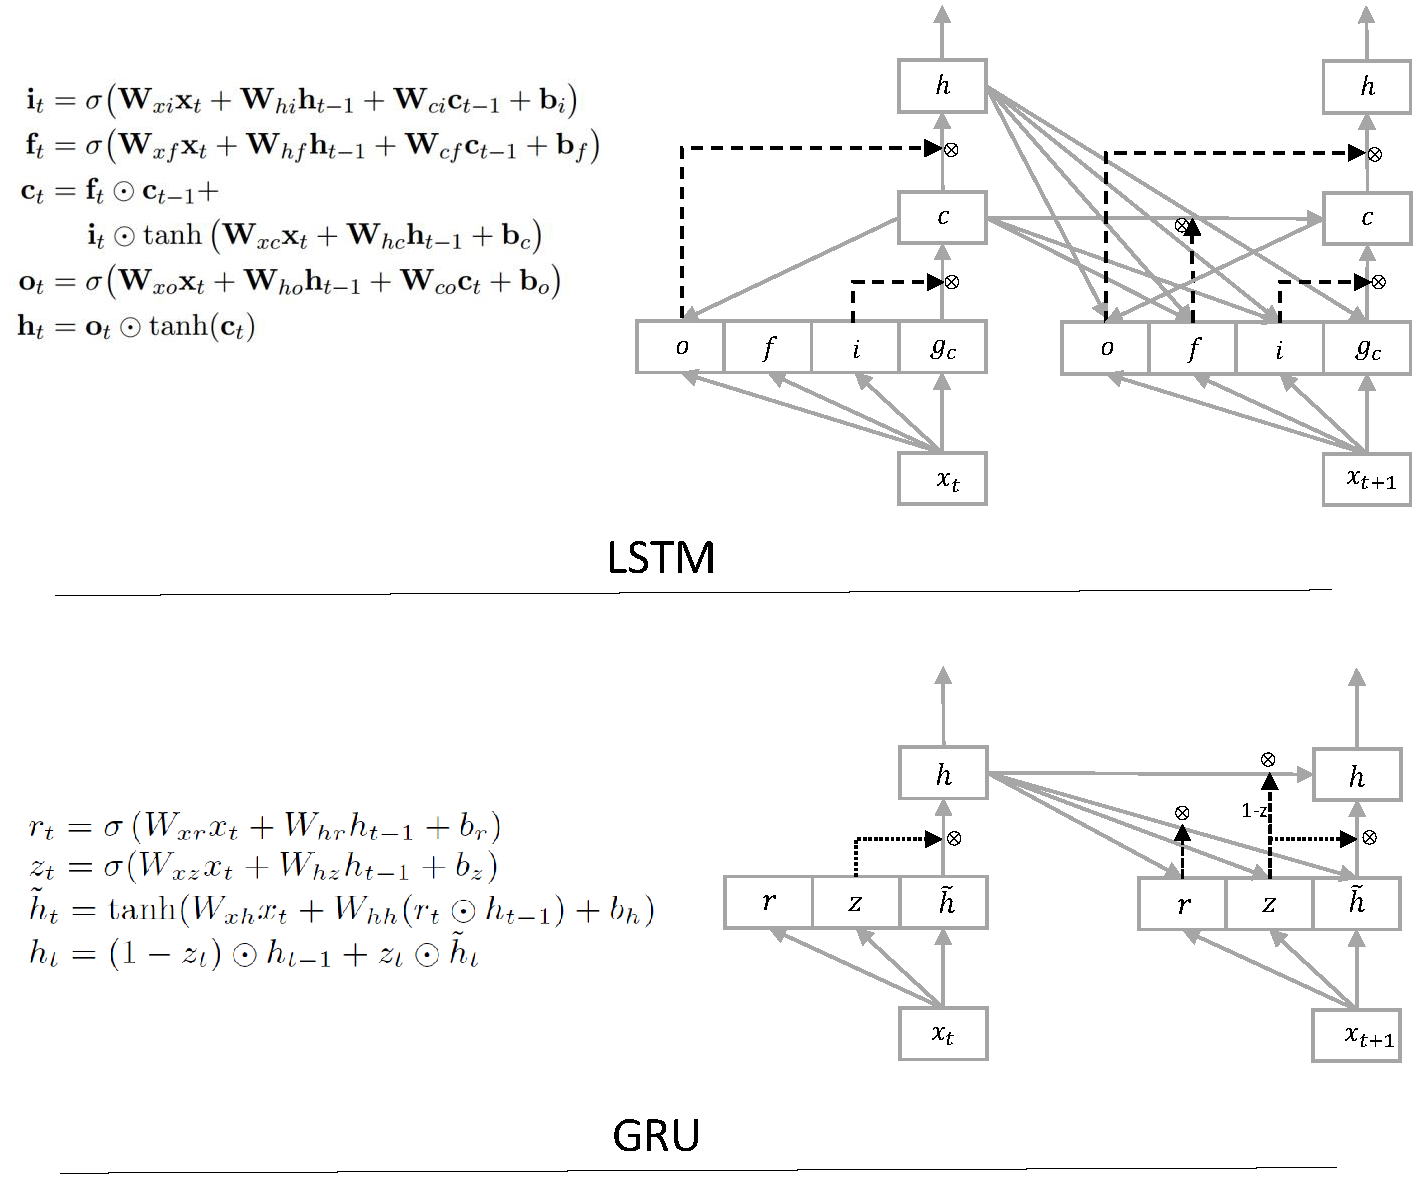 LSTM (Long Short-Term Memory) & GRU (Gated Recurrent Unit) in Java